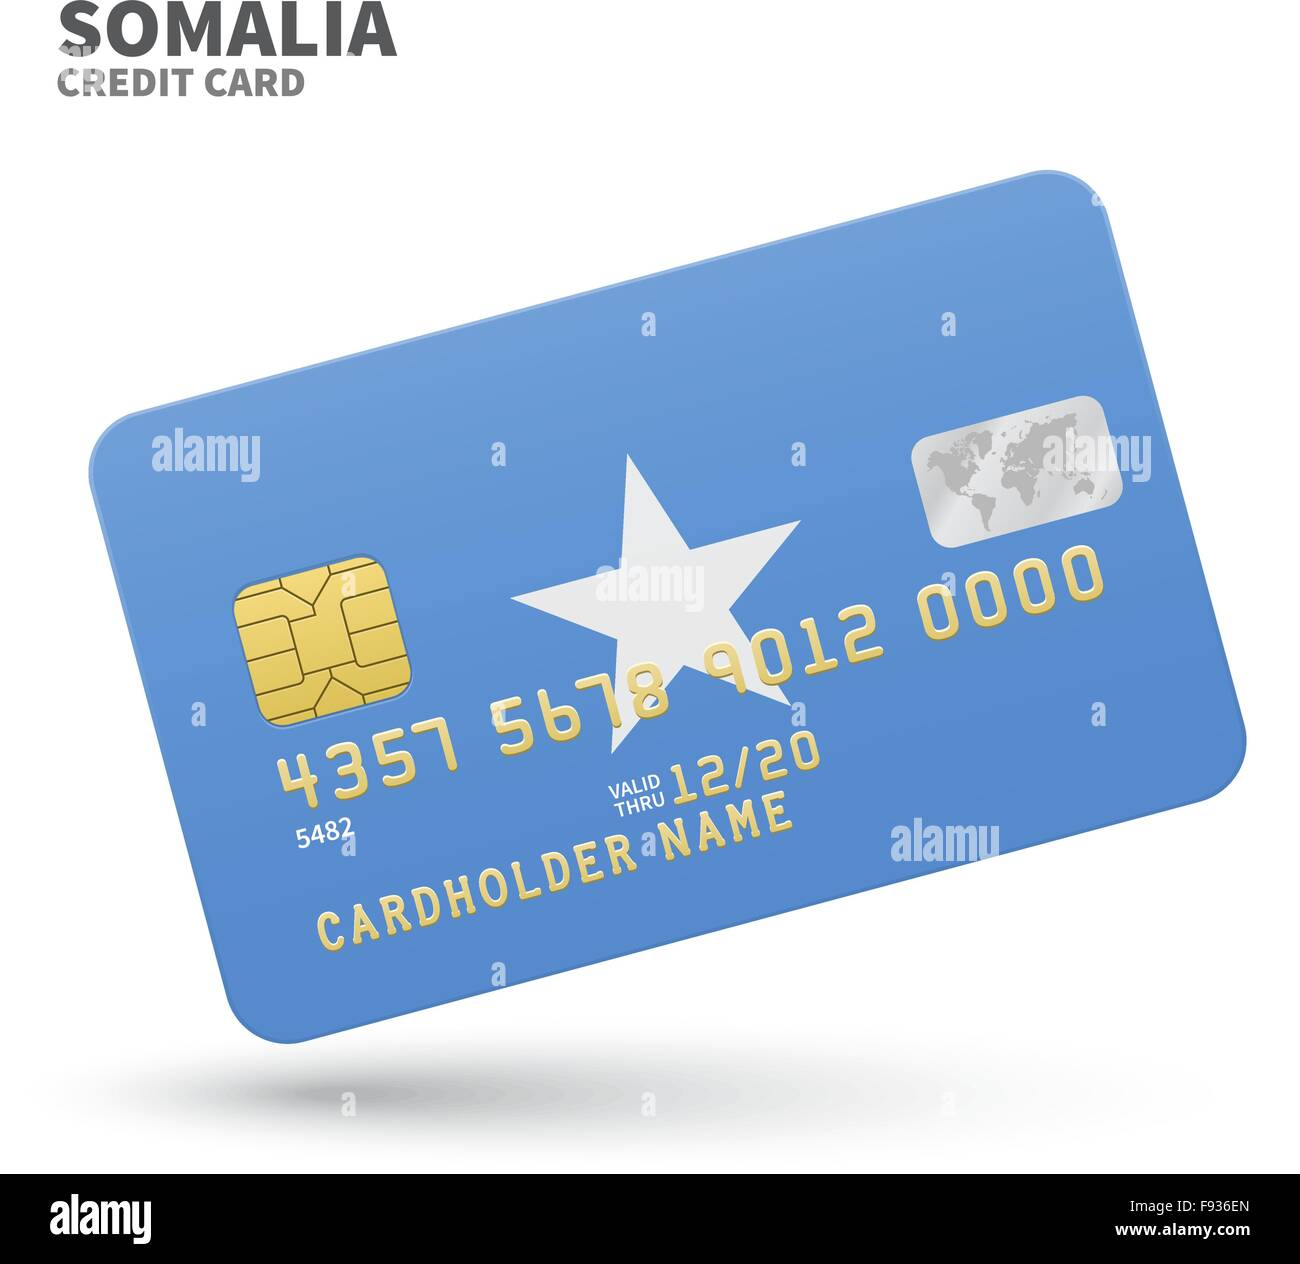 Credit card with Somalia flag background for bank, presentations ...